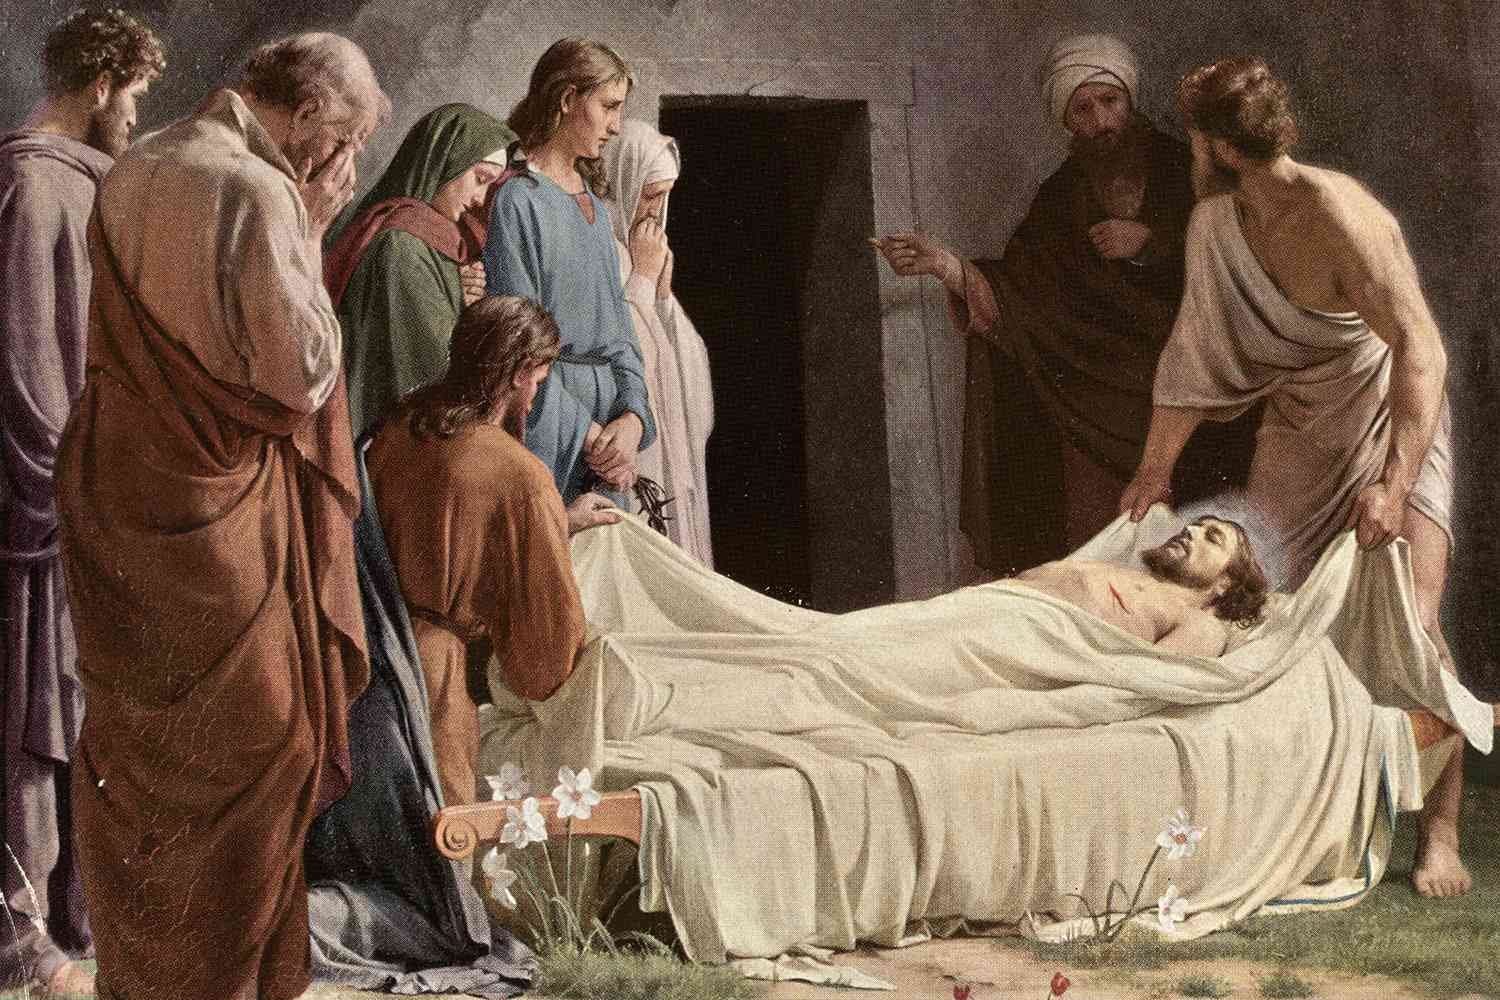 Disciples at the scene of the entombment of Jesus after his crucifixion